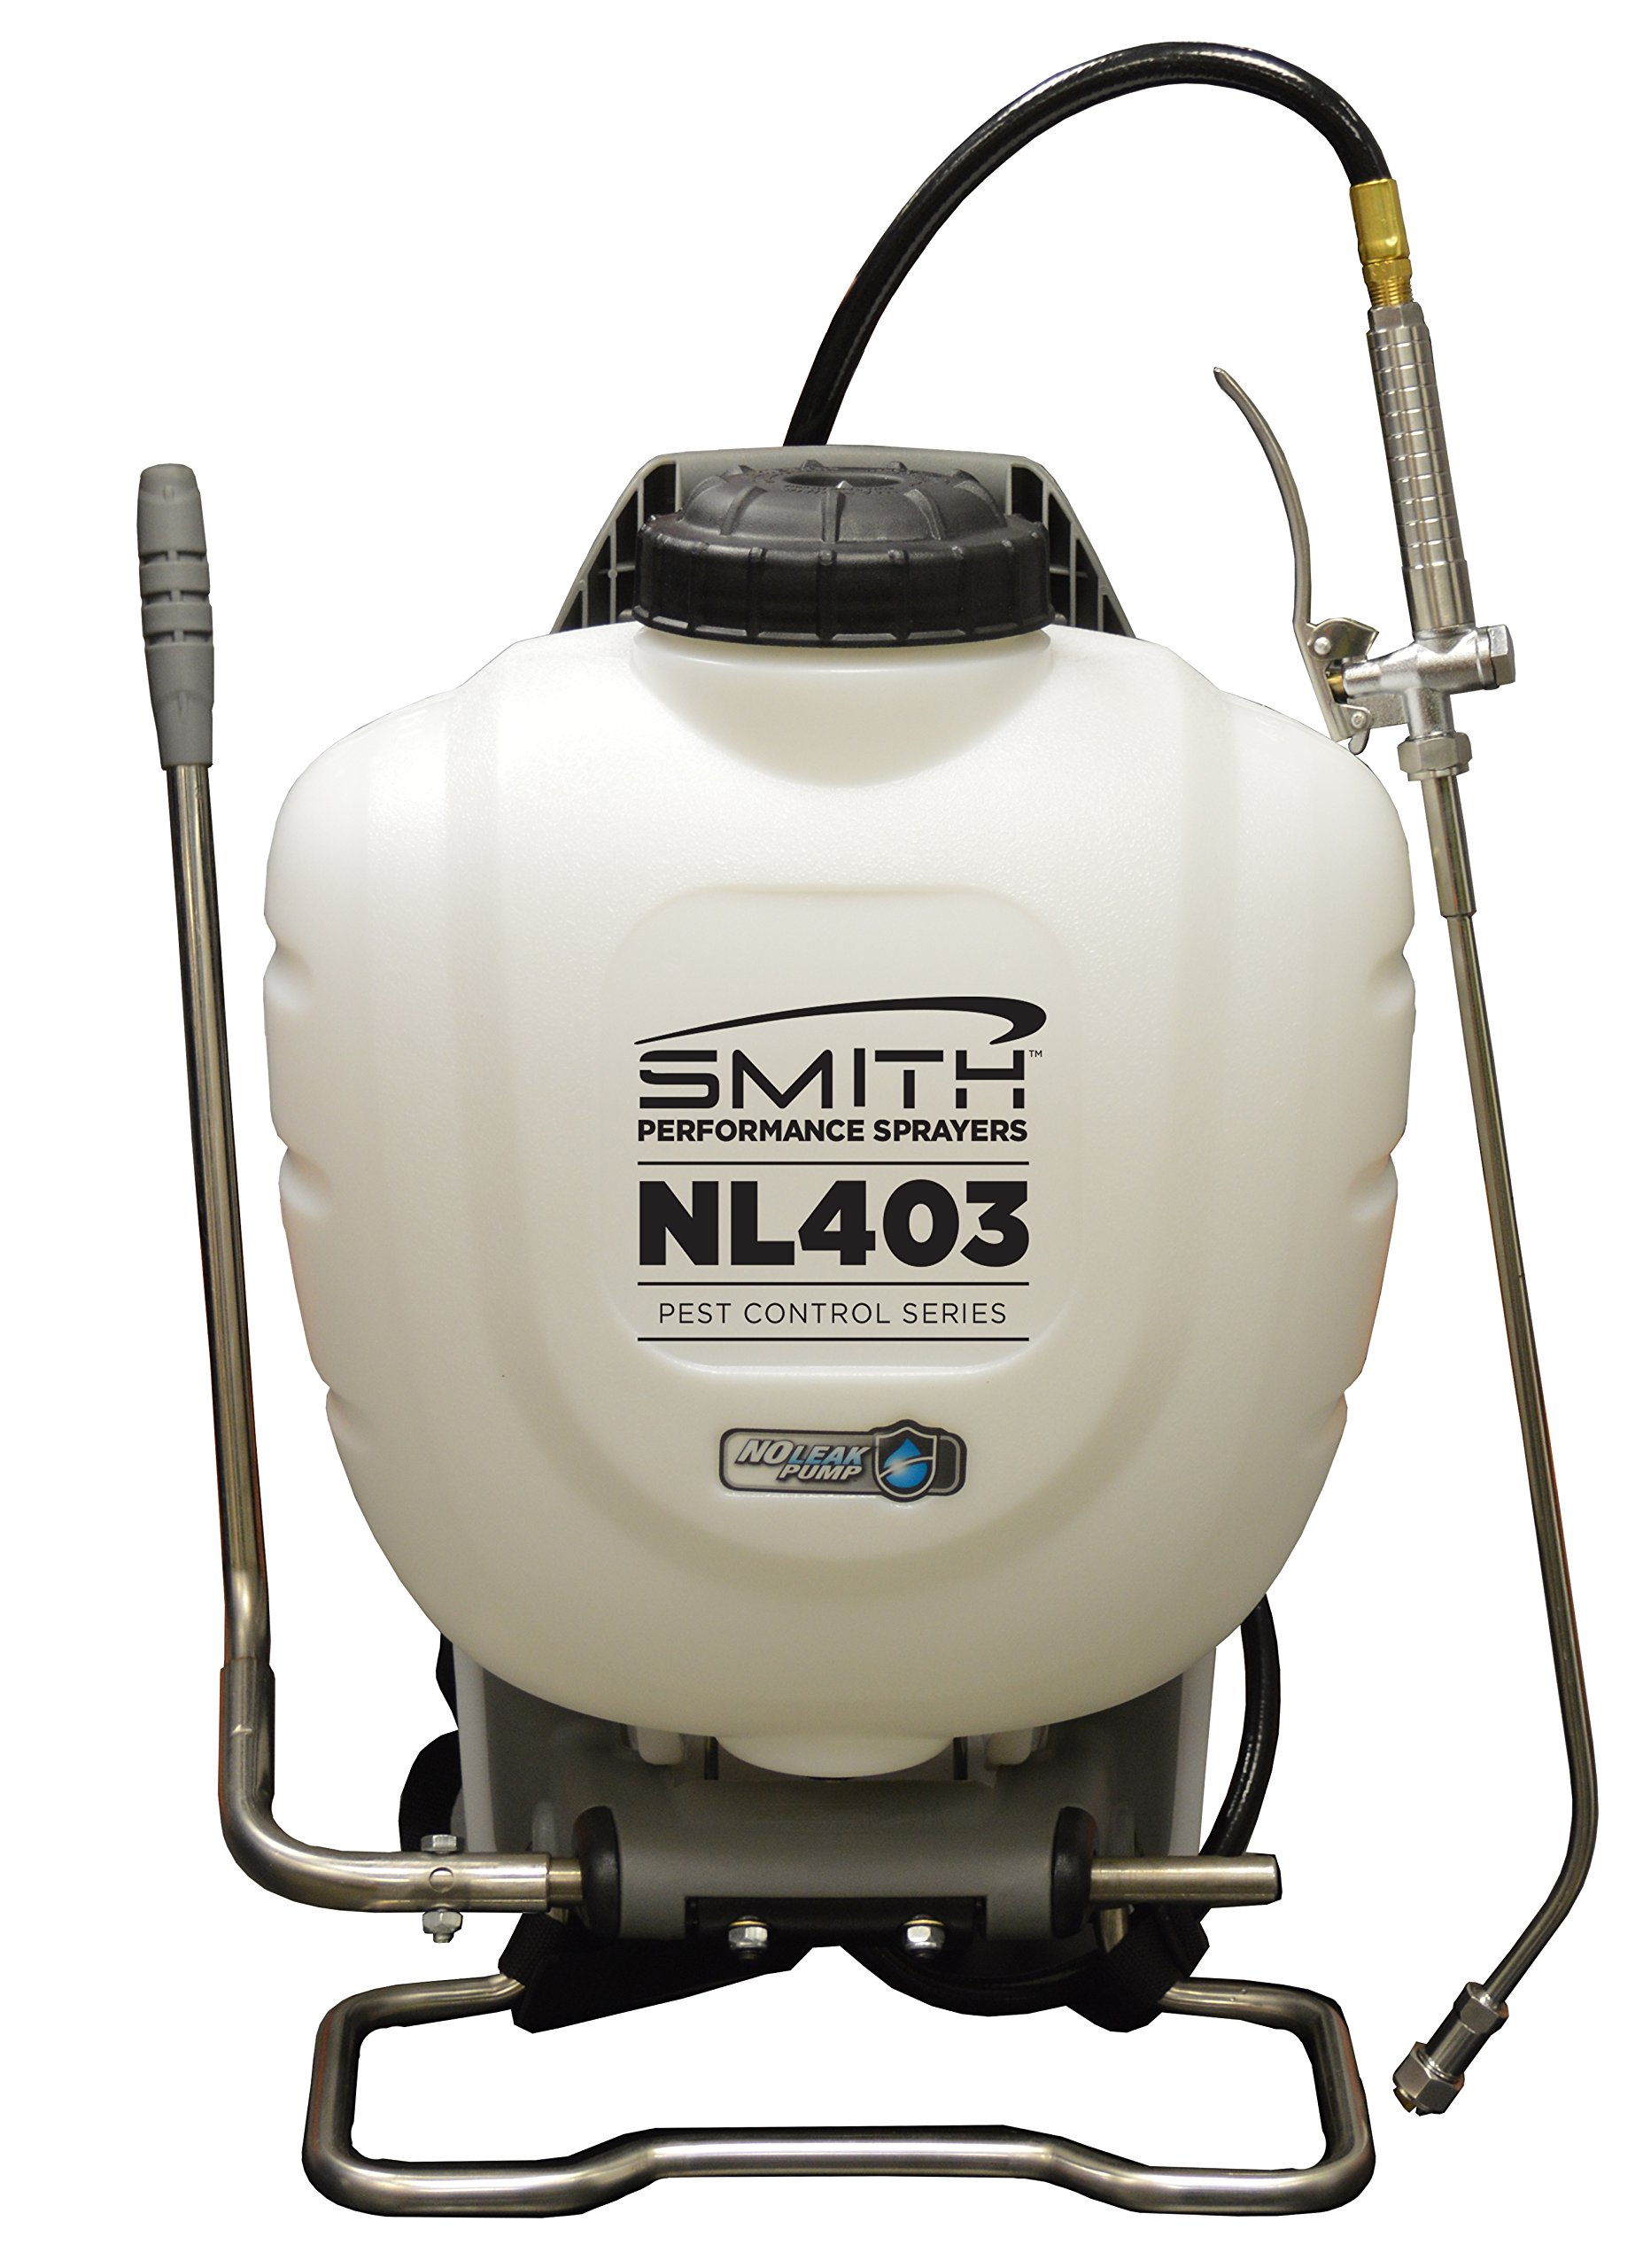 Smith Performance Sprayers 190442 No-Leak Backpack Sprayer for Pest Control, 4 Gallon, NL403 by Smith Performance Sprayers